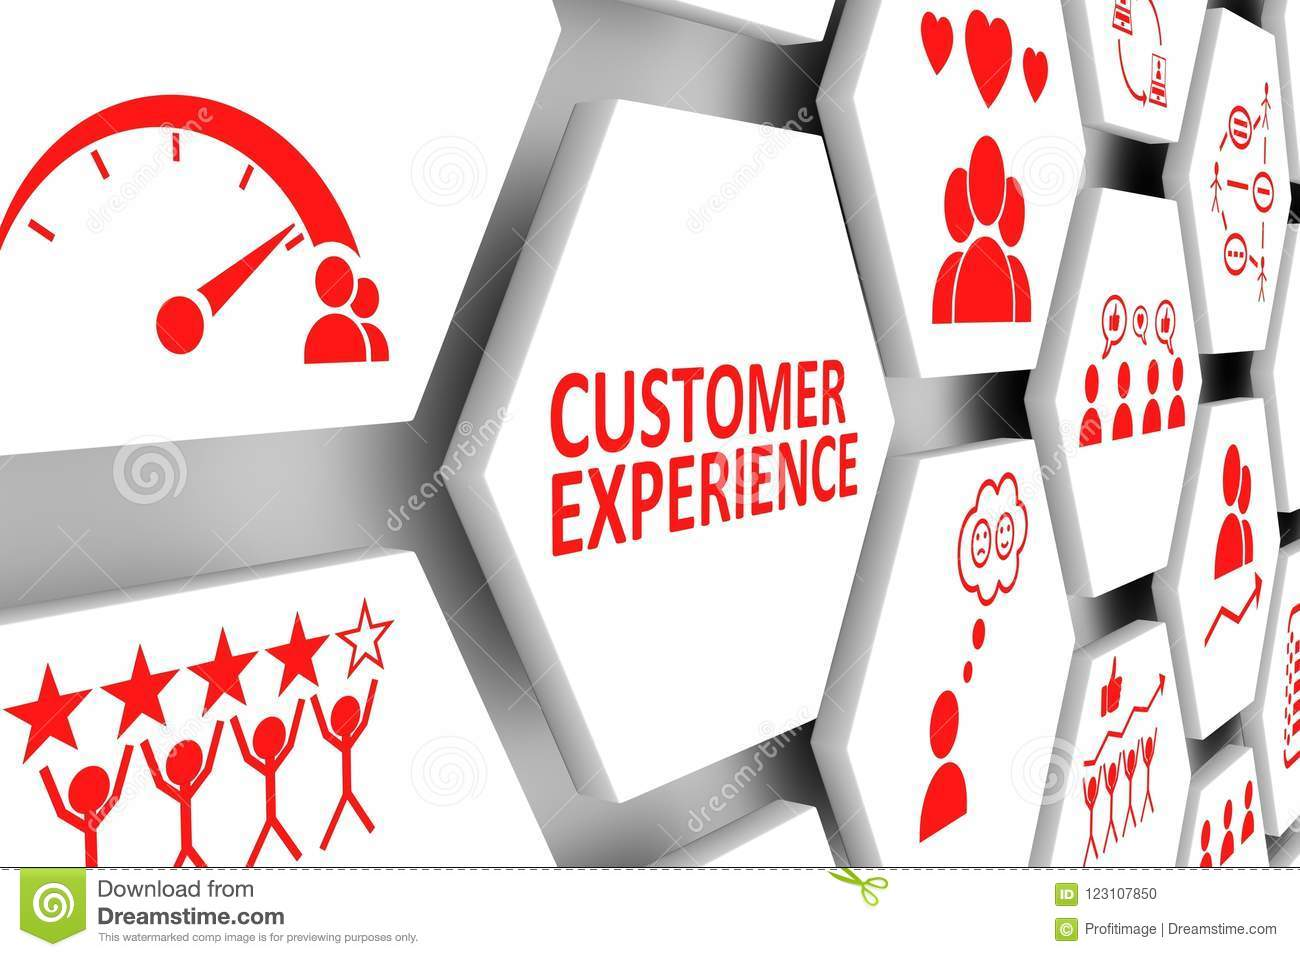 CUSTOMER EXPERIENCE concept